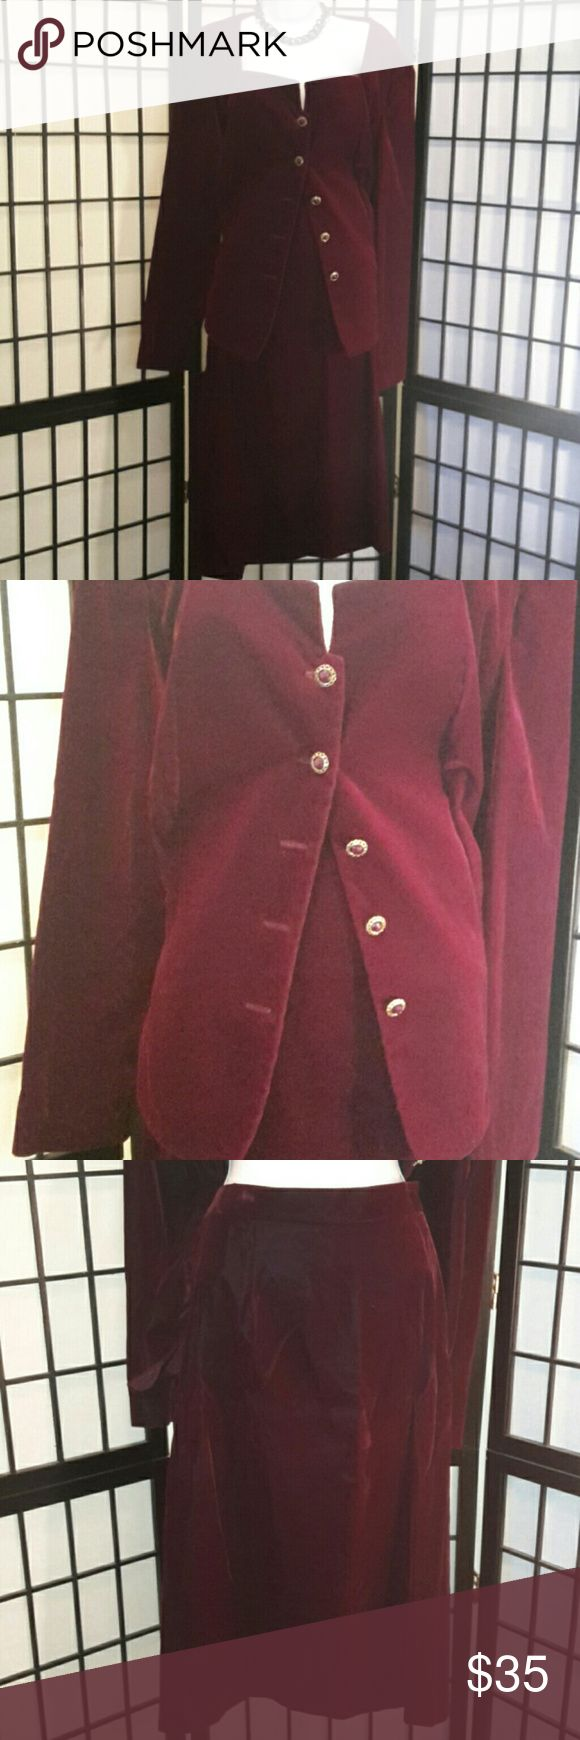 Cachet by Bari Protas 2pc Skirt Formal Suit Excellent Condition, Beautiful Burgundy Suit, Great for any Formal Dinner. Gold Buttons, Elastic Back, Back Zipper, Back Slit, Dry Clean Only, 70% Acetate 30% Nylon, Does Have A Velvet Look and Feel, Accessories not included, No Trading, but will consider reasonable offers. Please feel free to ask any questions. Thanks for sharing my closet, I will ALWAYS show you PoshLove by doing the same💓 Cachet Skirts Skirt Sets